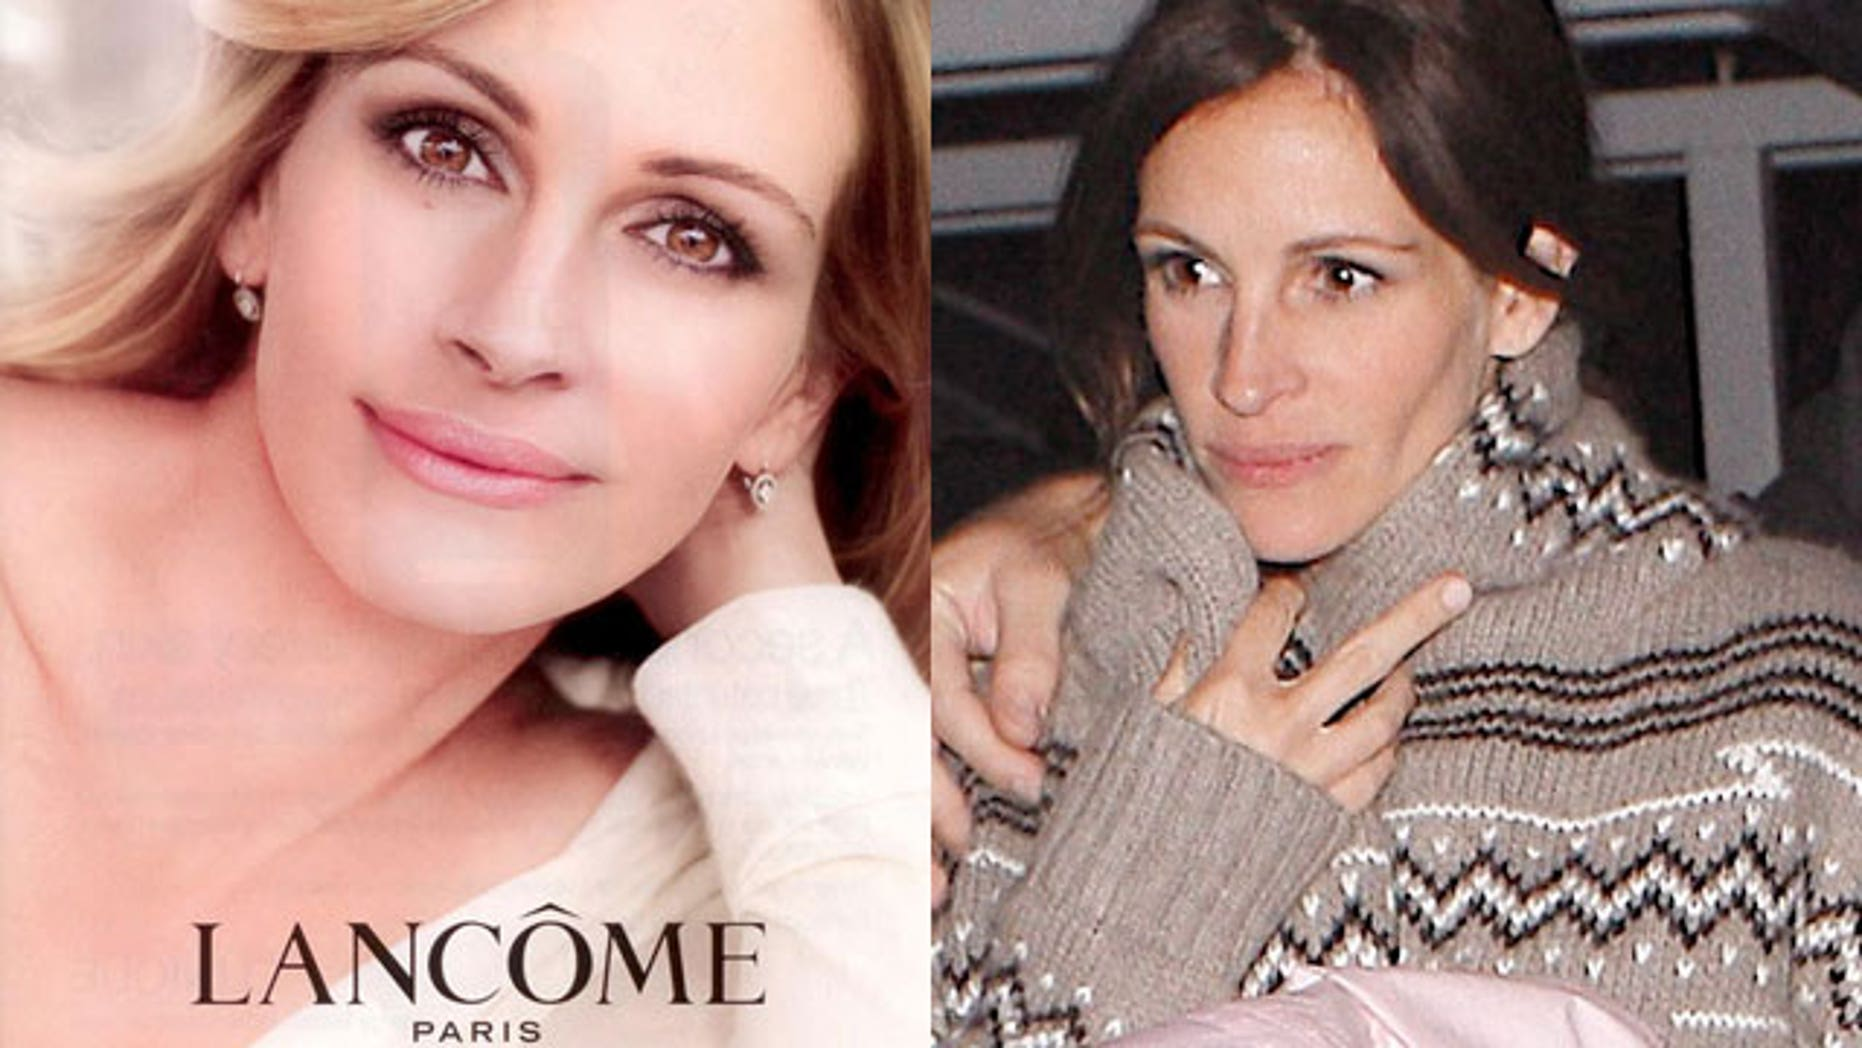 Julia Roberts in her Lancome ads and (right) walking on the street. (L'OReal/X17)